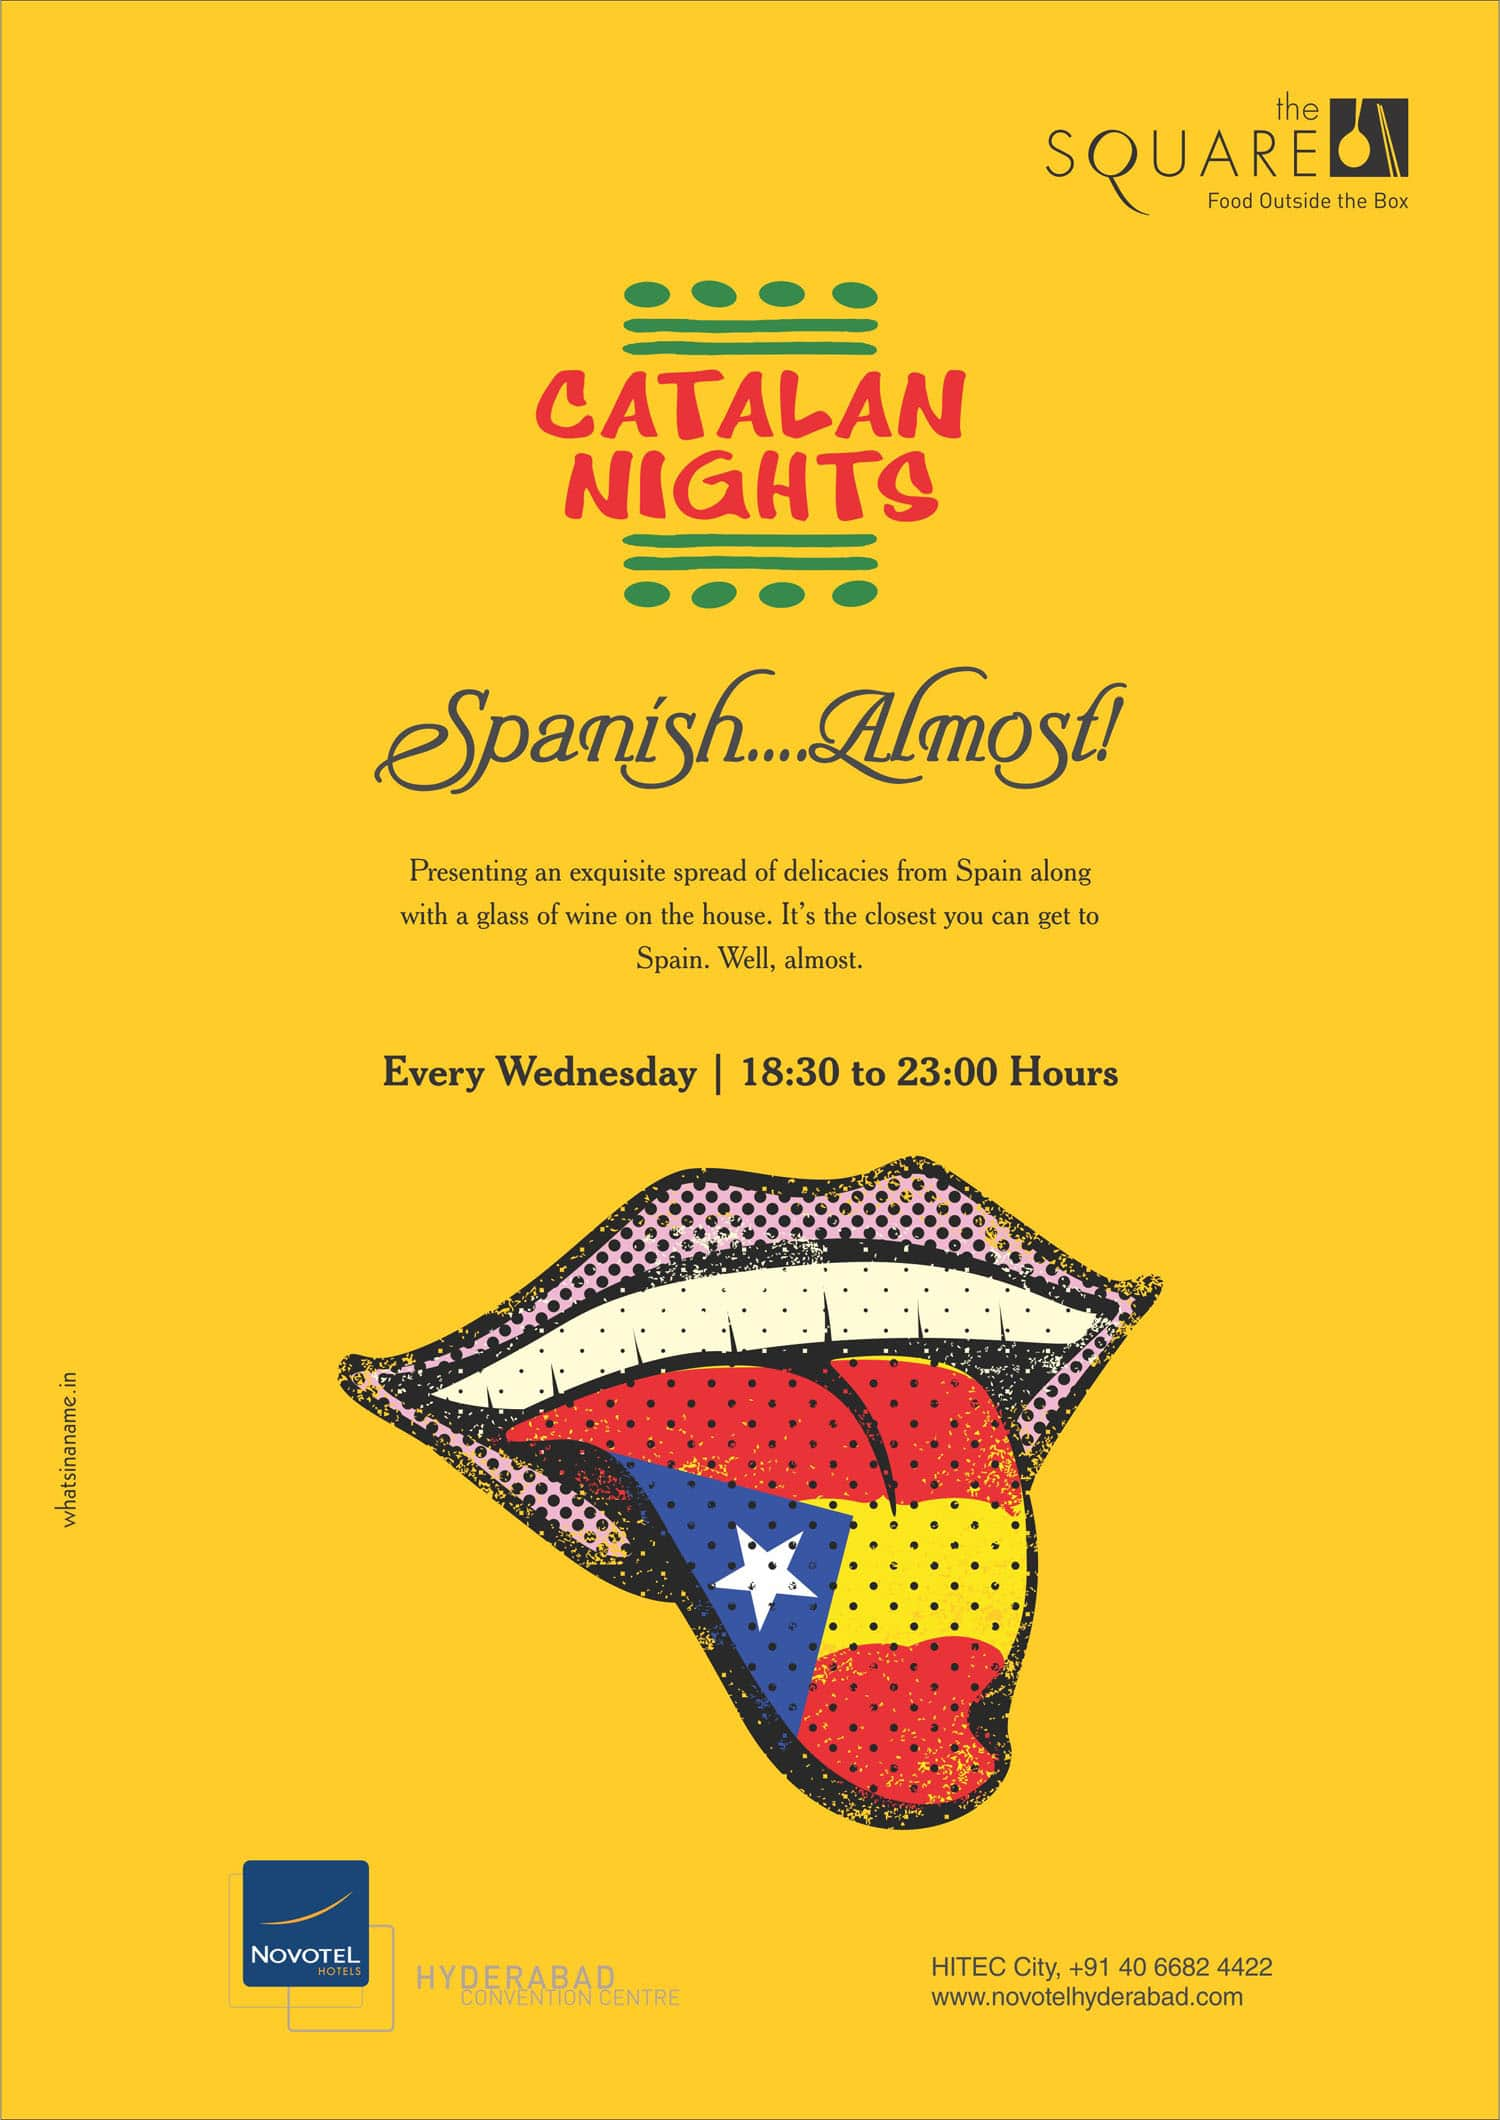 akutucdveqi-catalan-night,-novotel,-the-square,-best-food-ad,-what's-in-a-name-creatives